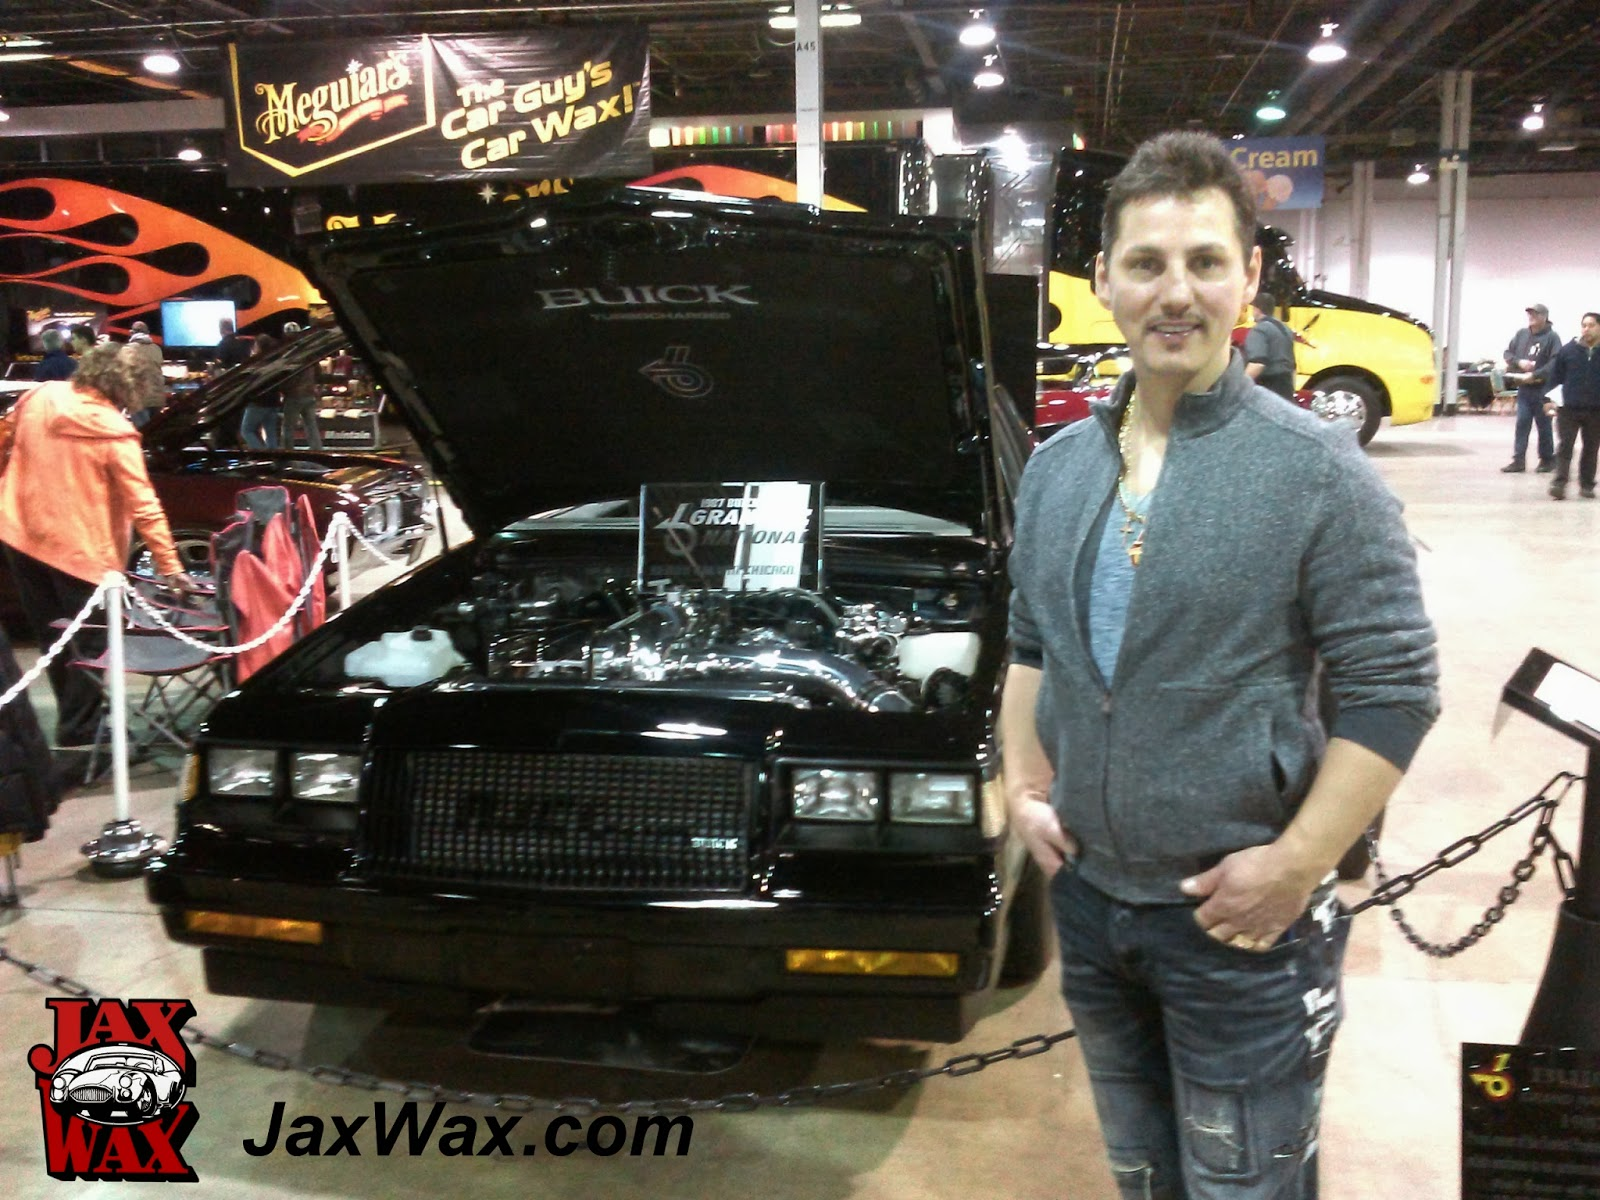 1987 Buick Grand National Jax Wax Customer Chicago World of Wheels